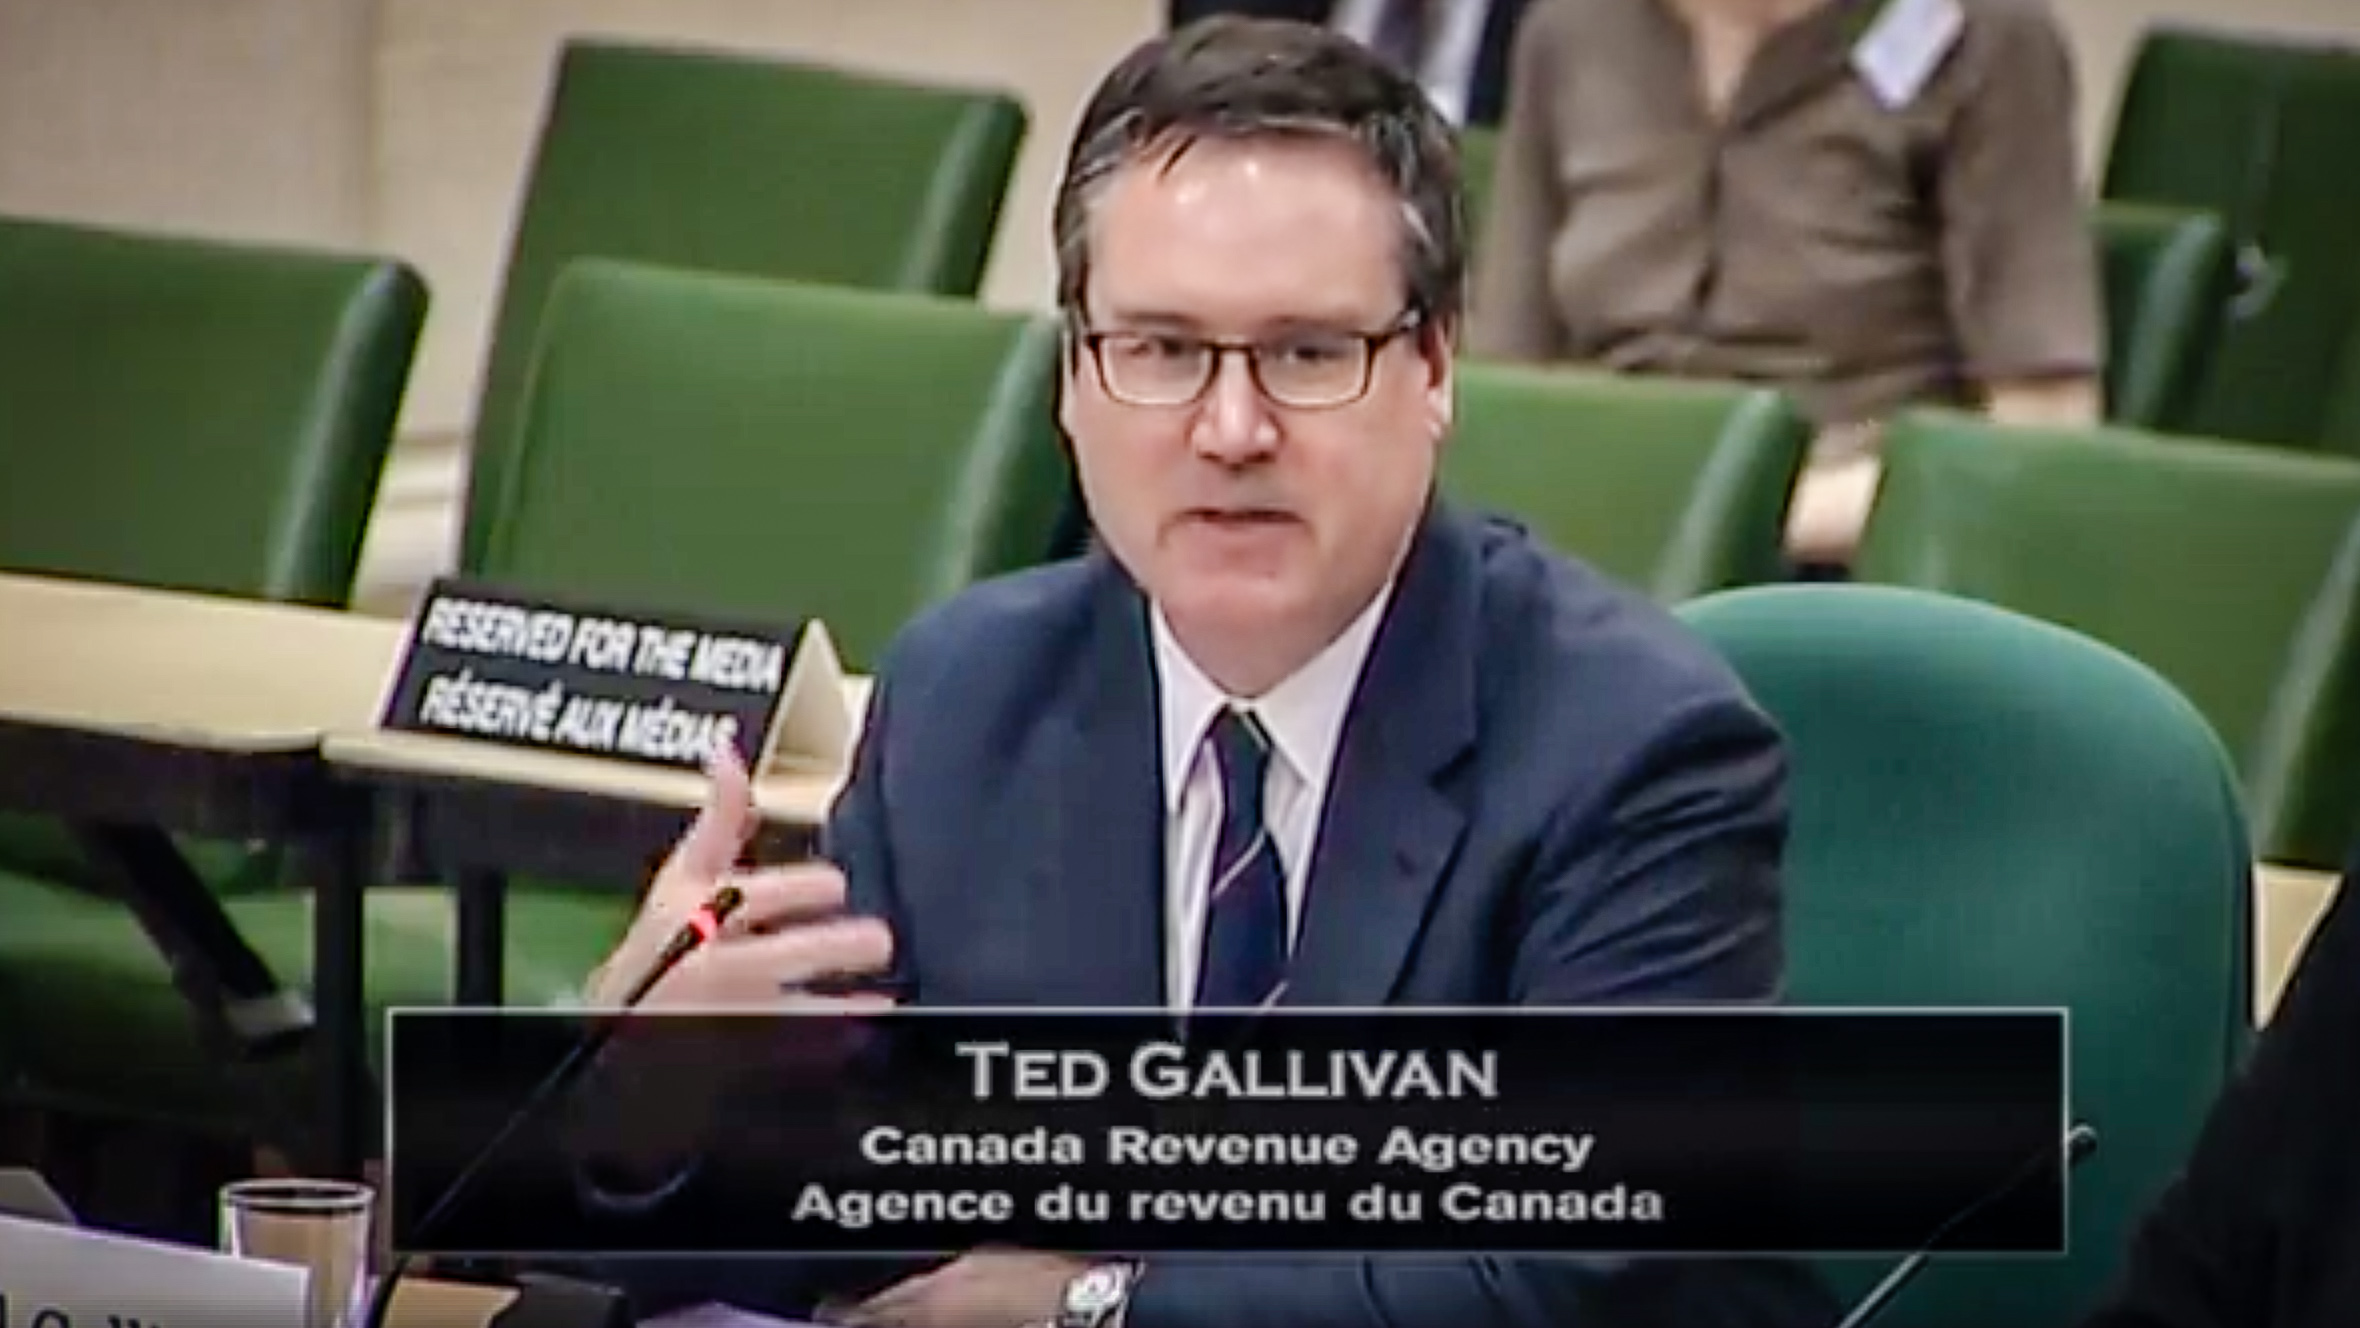 Ted Gallivan, the CRA's assistant commissioner, is pictured in a still from a webcast in May 2018